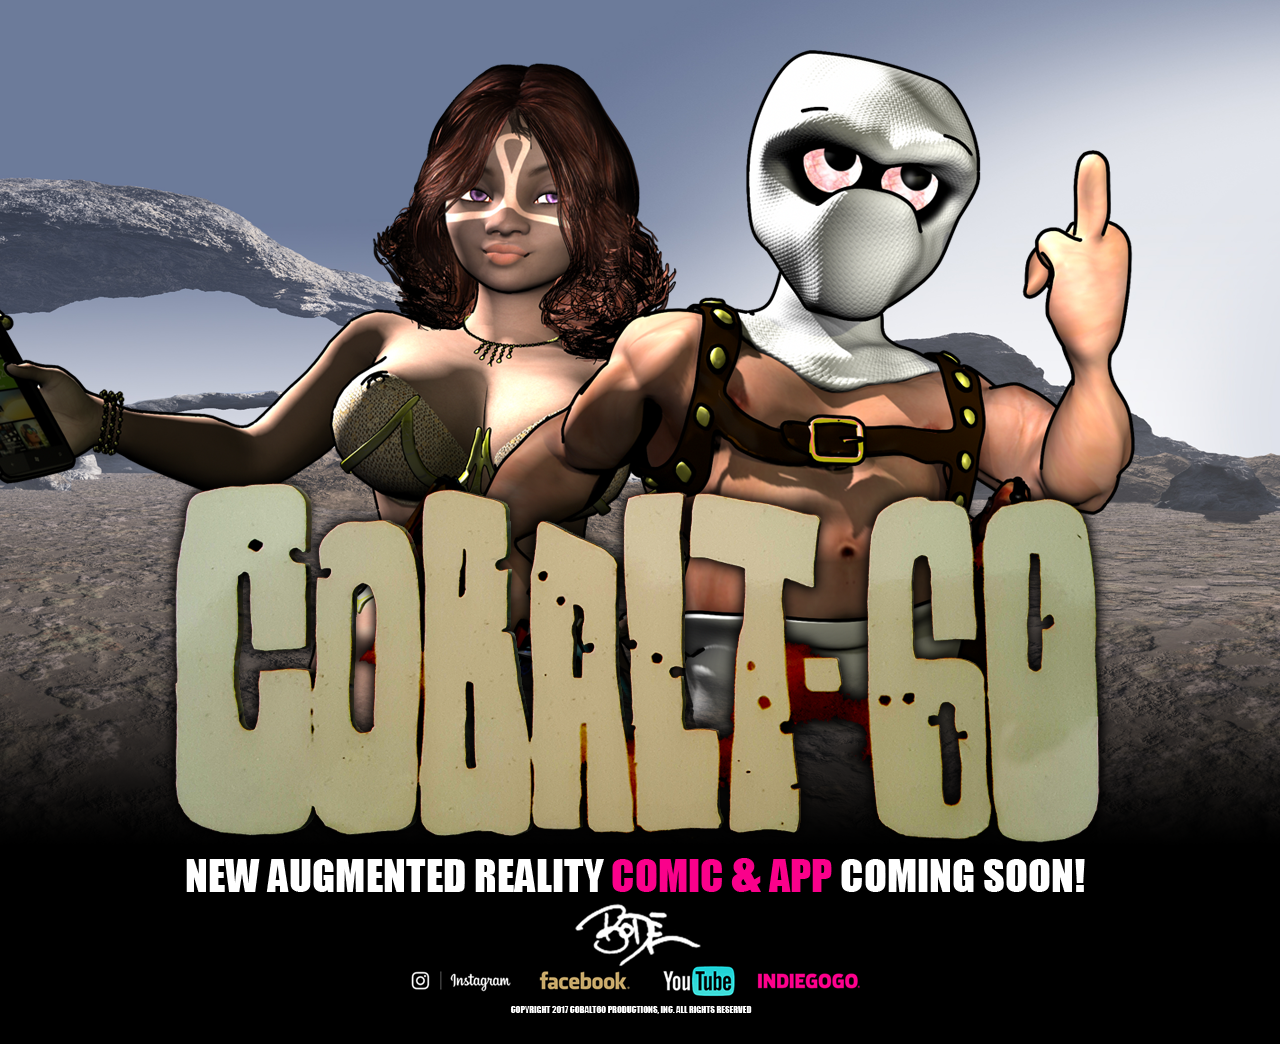 Cobalt 60 Augmented Graphic Novel Promotion